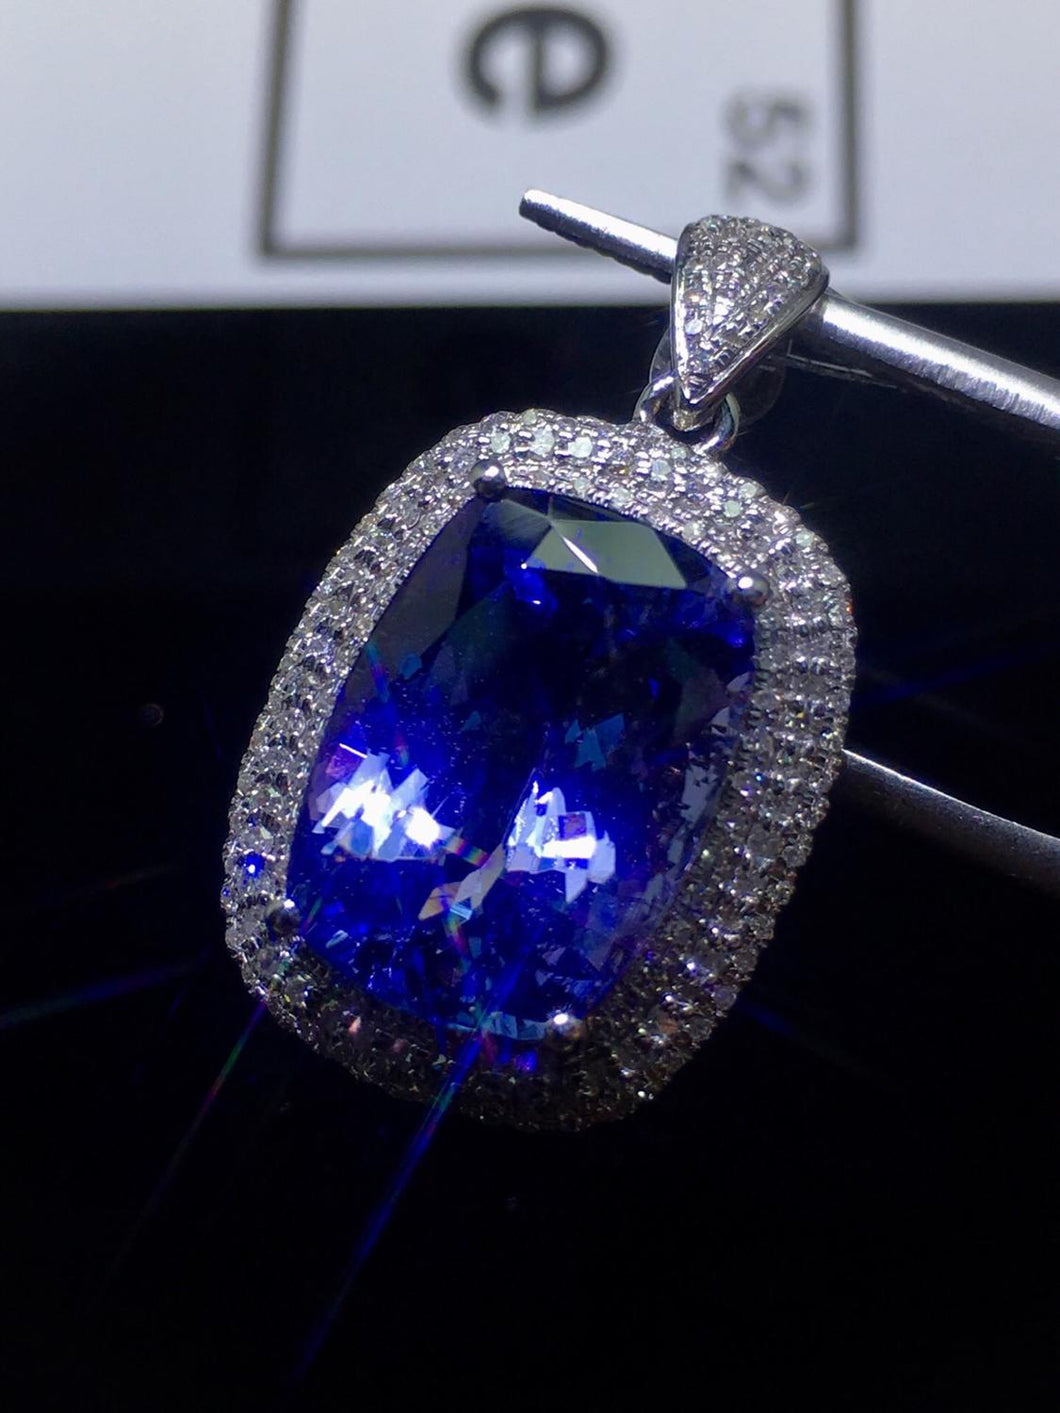 Fine Jewelry Tanzania Origin Real 18K White Gold 100% Natural Blue Tanzanite Gemstones 7.8ct Diamonds Fine Chic Pendant Necklace